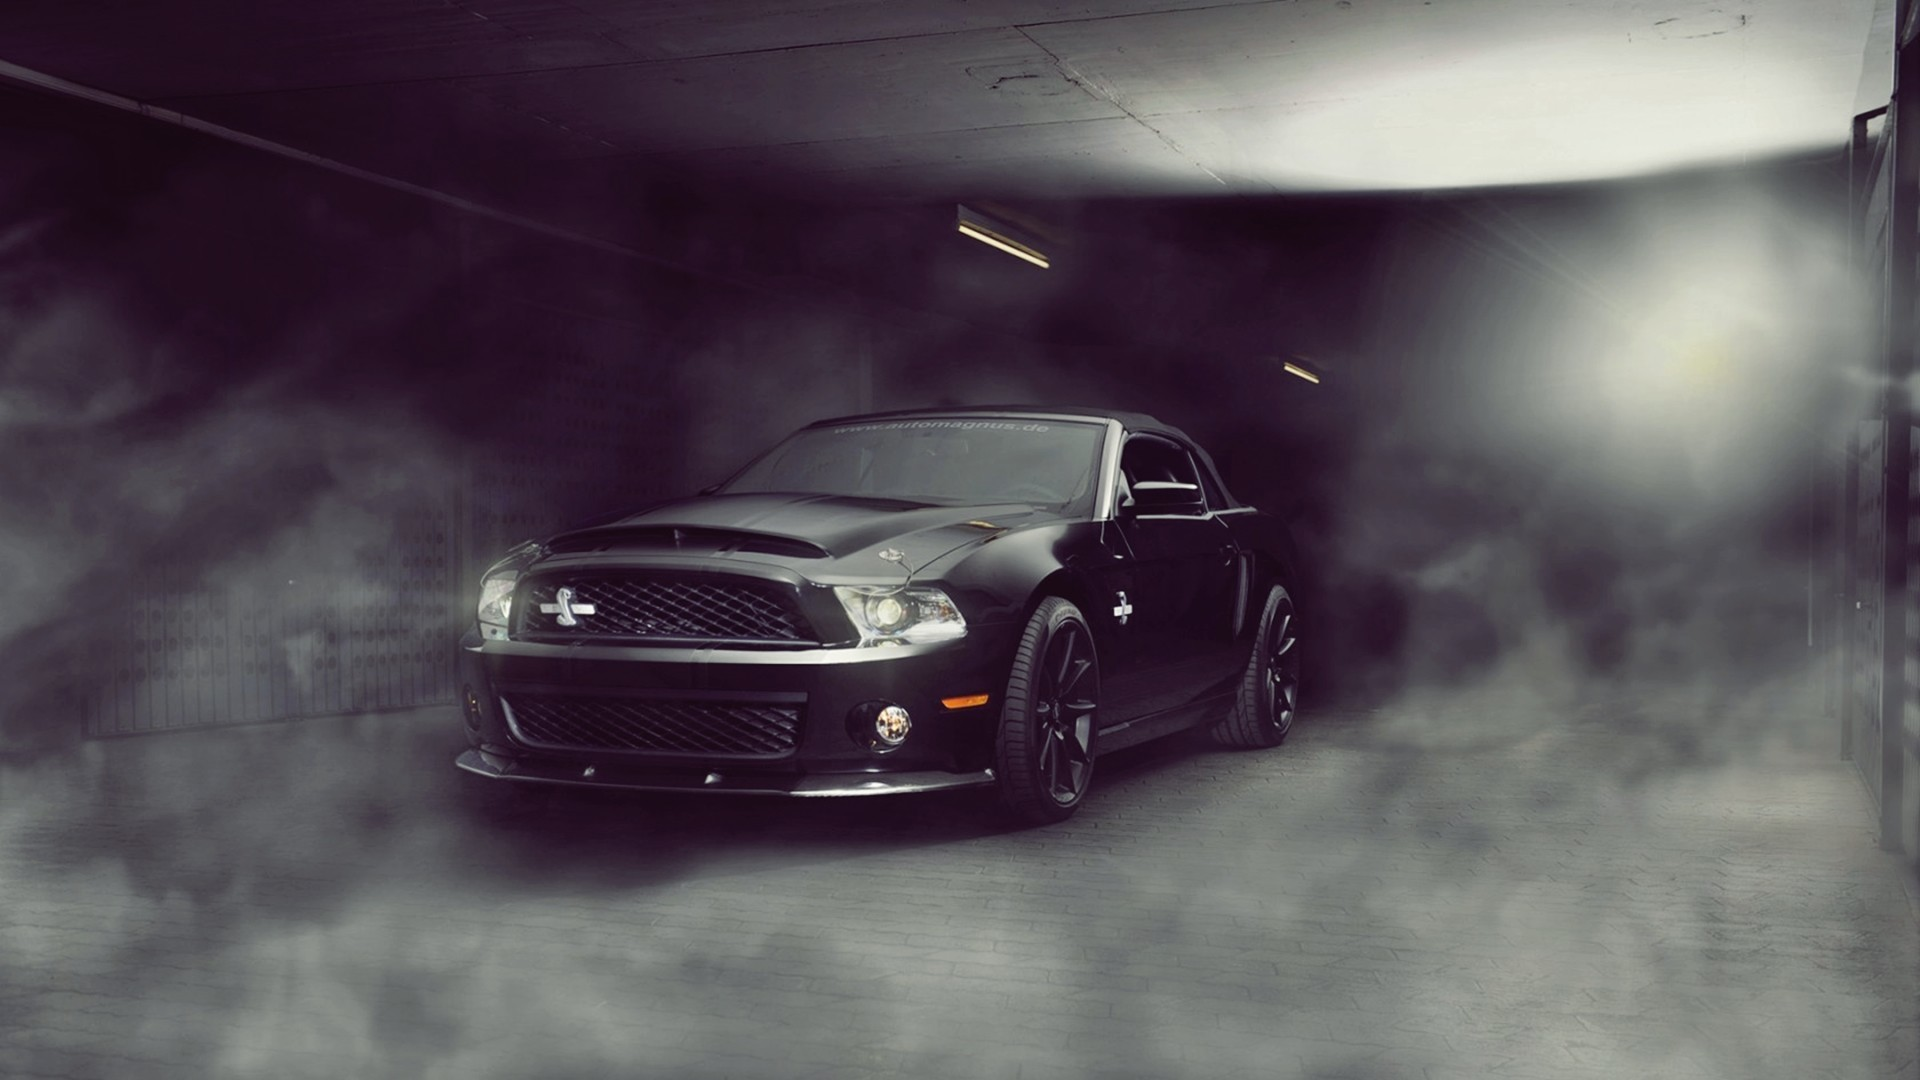 Res: 1920x1080, black cars ford mustang knight rider lights muscle car shelby gt500  supersnake smoke